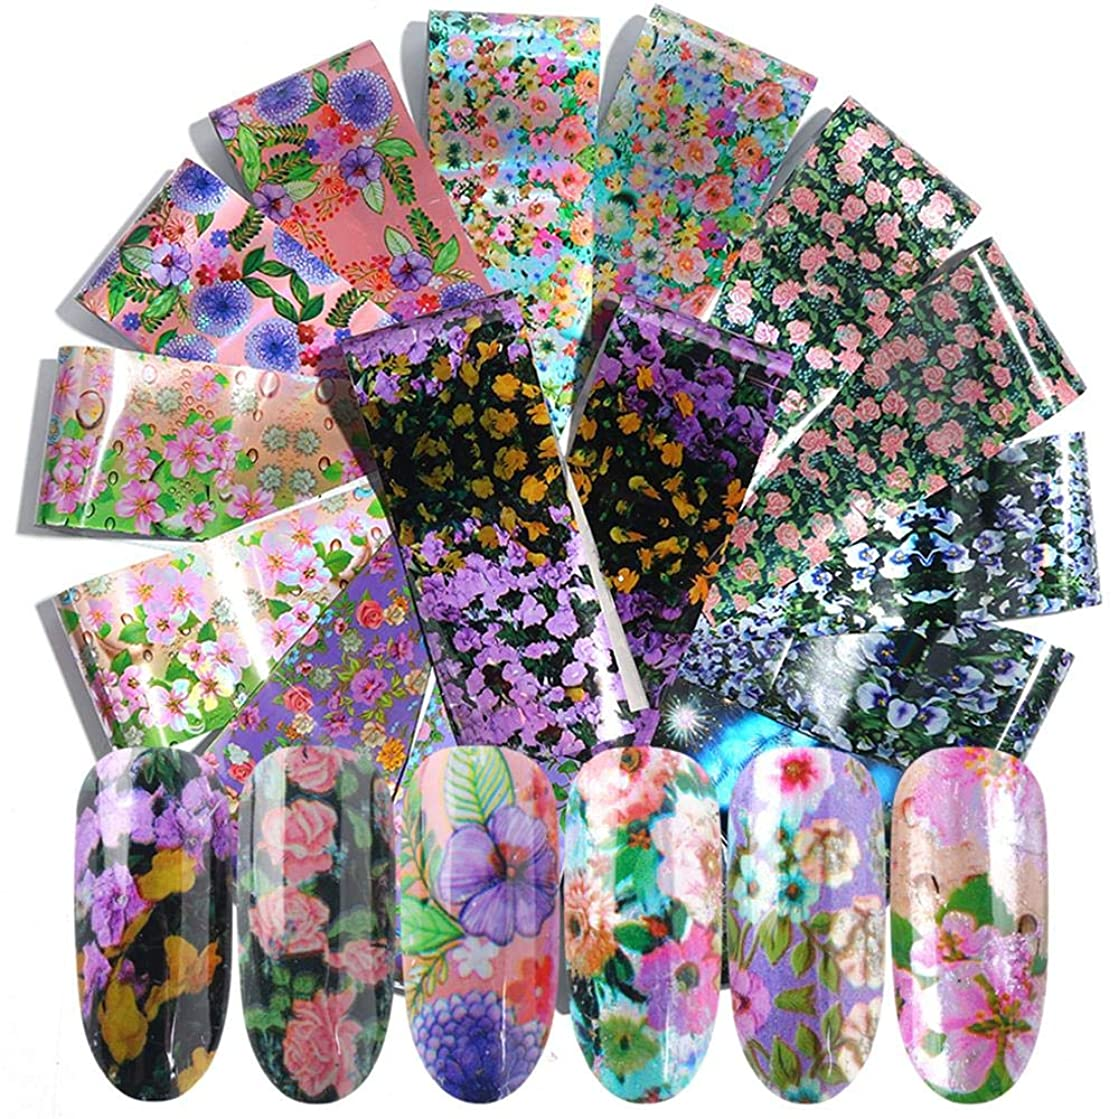 16 pieces/set of colorful nail polish stickers nail art decoration summer flower design transfer glue paste flower nail tips